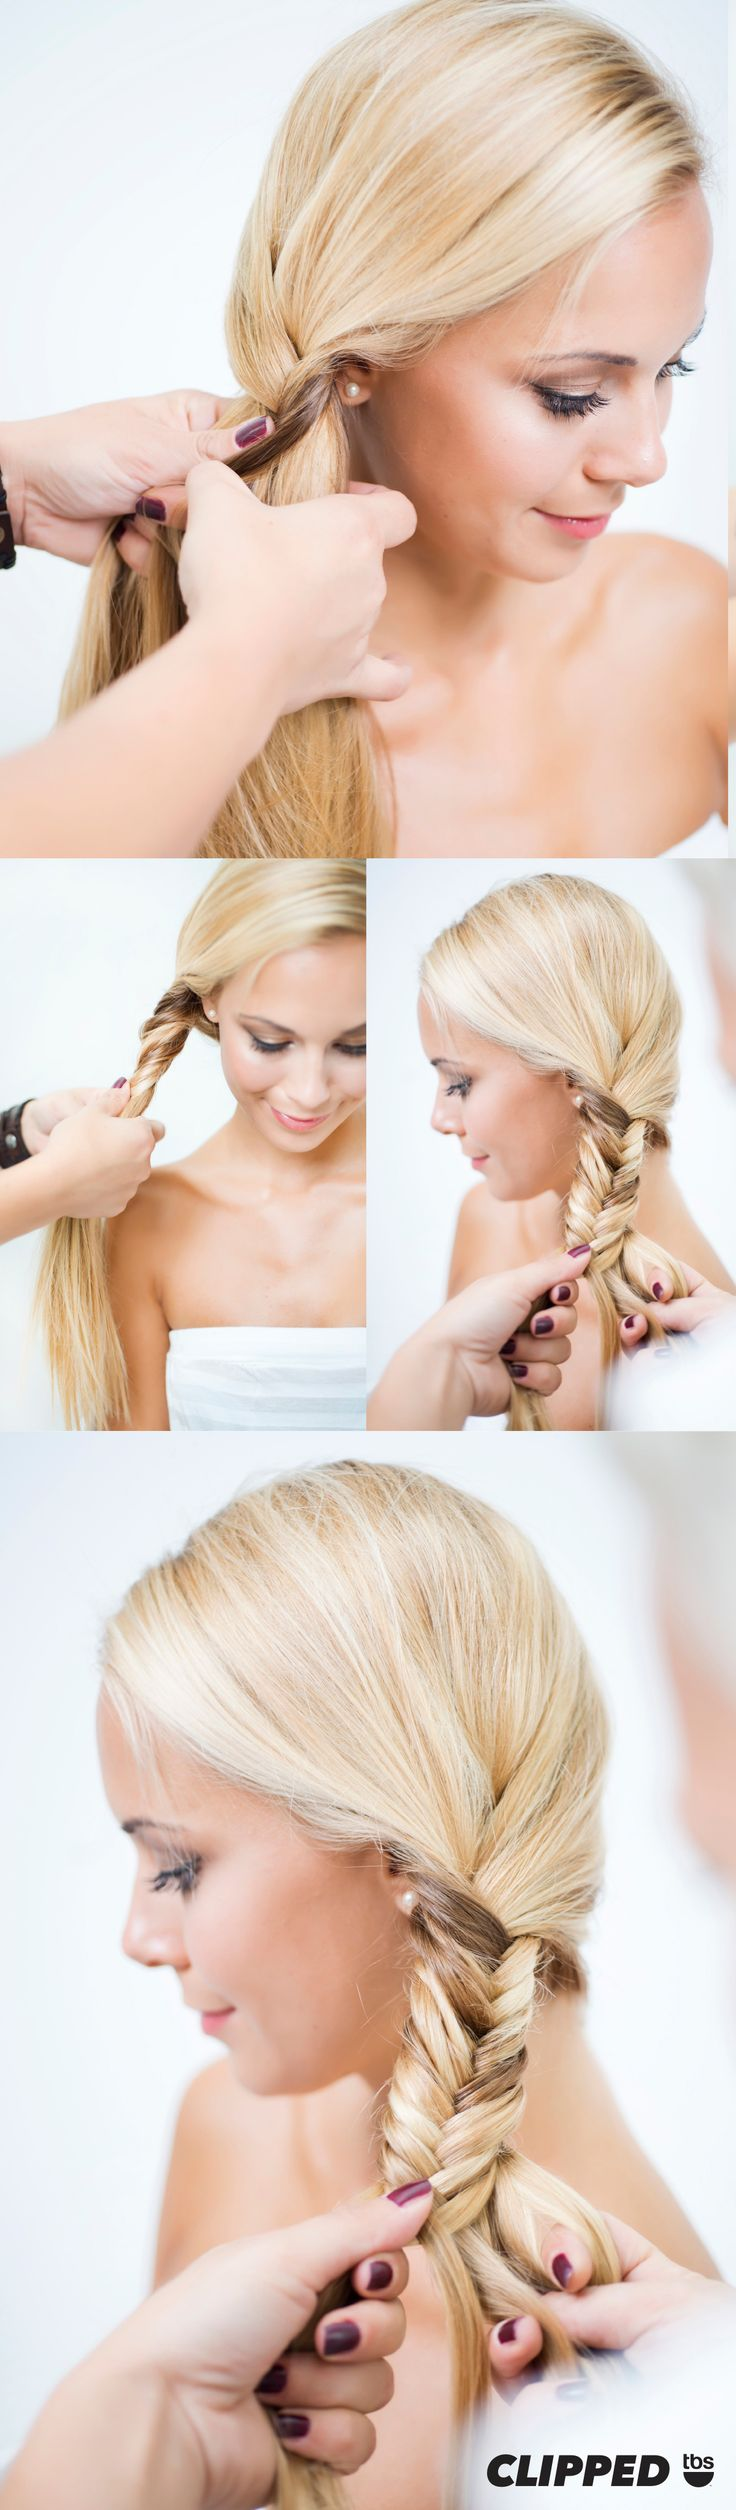 Tutorial: How to fishtail in four easy steps. A fishtail braid is one of summer's hottest trend and a favorite style of Clipped star Ashley Tisdale. Premieres Tuesday, June 16, 2015 at 10/9c.